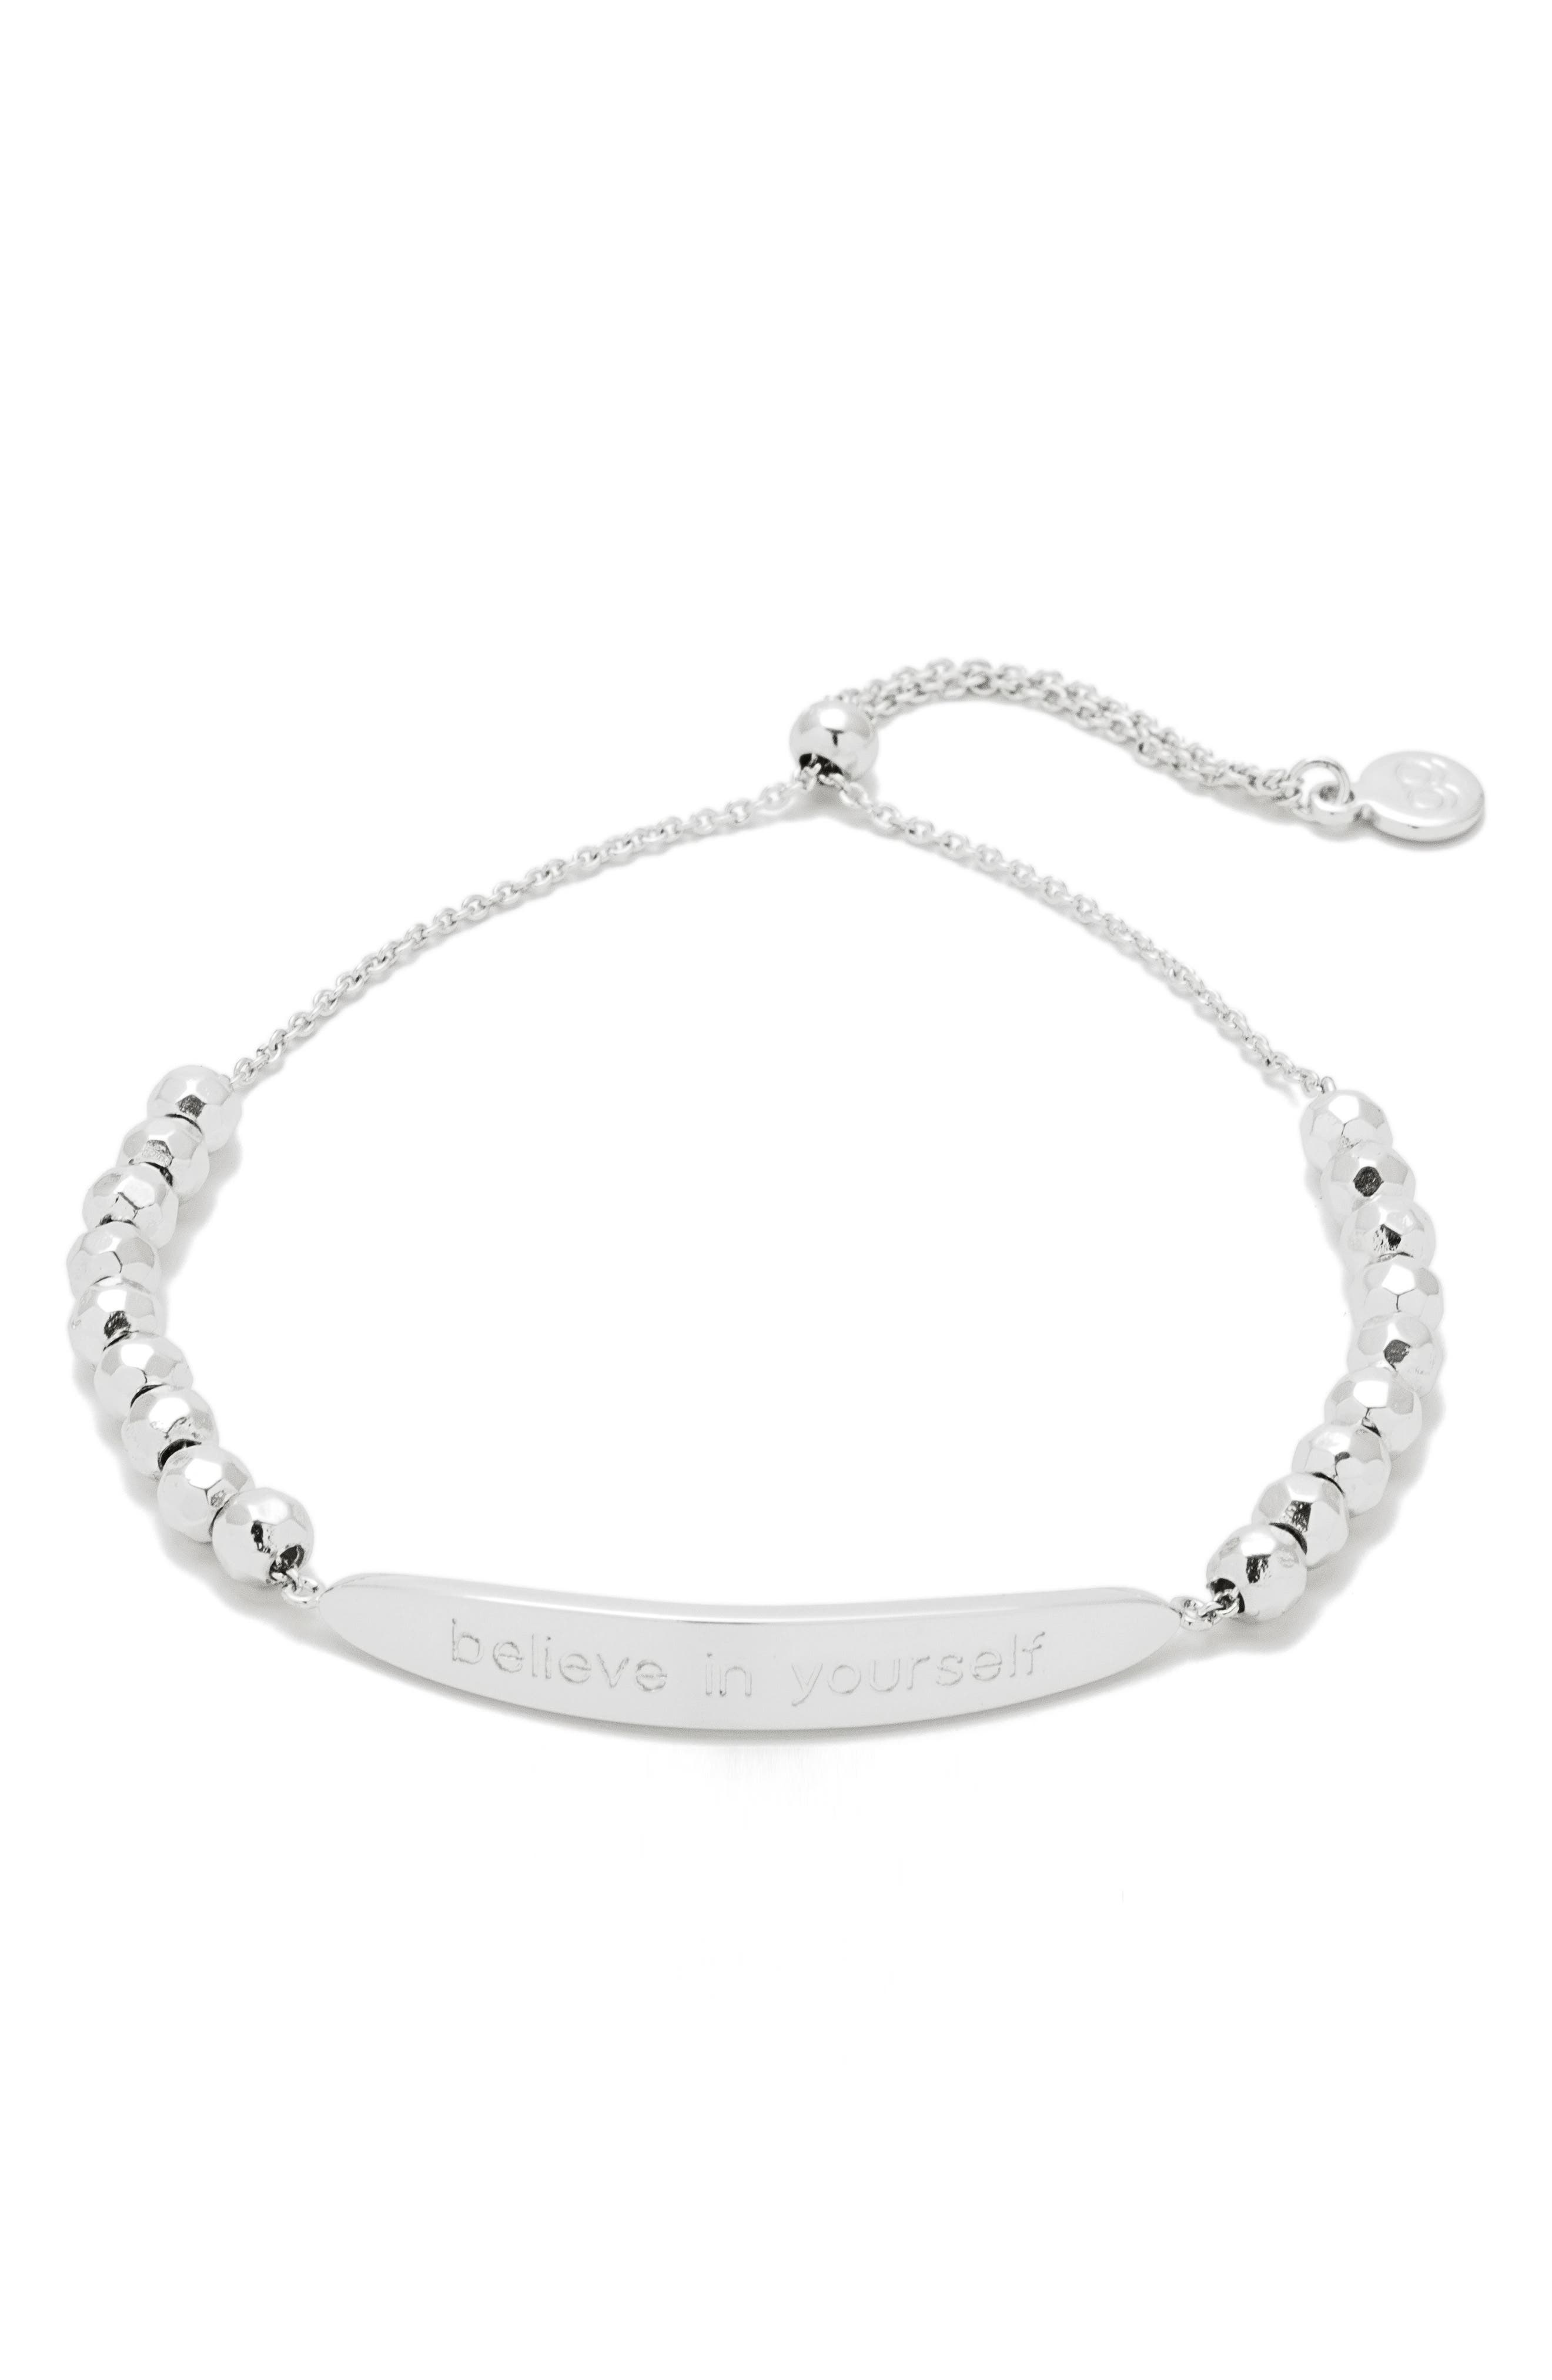 Power Intention Believe in Yourself Bracelet,                             Main thumbnail 1, color,                             049